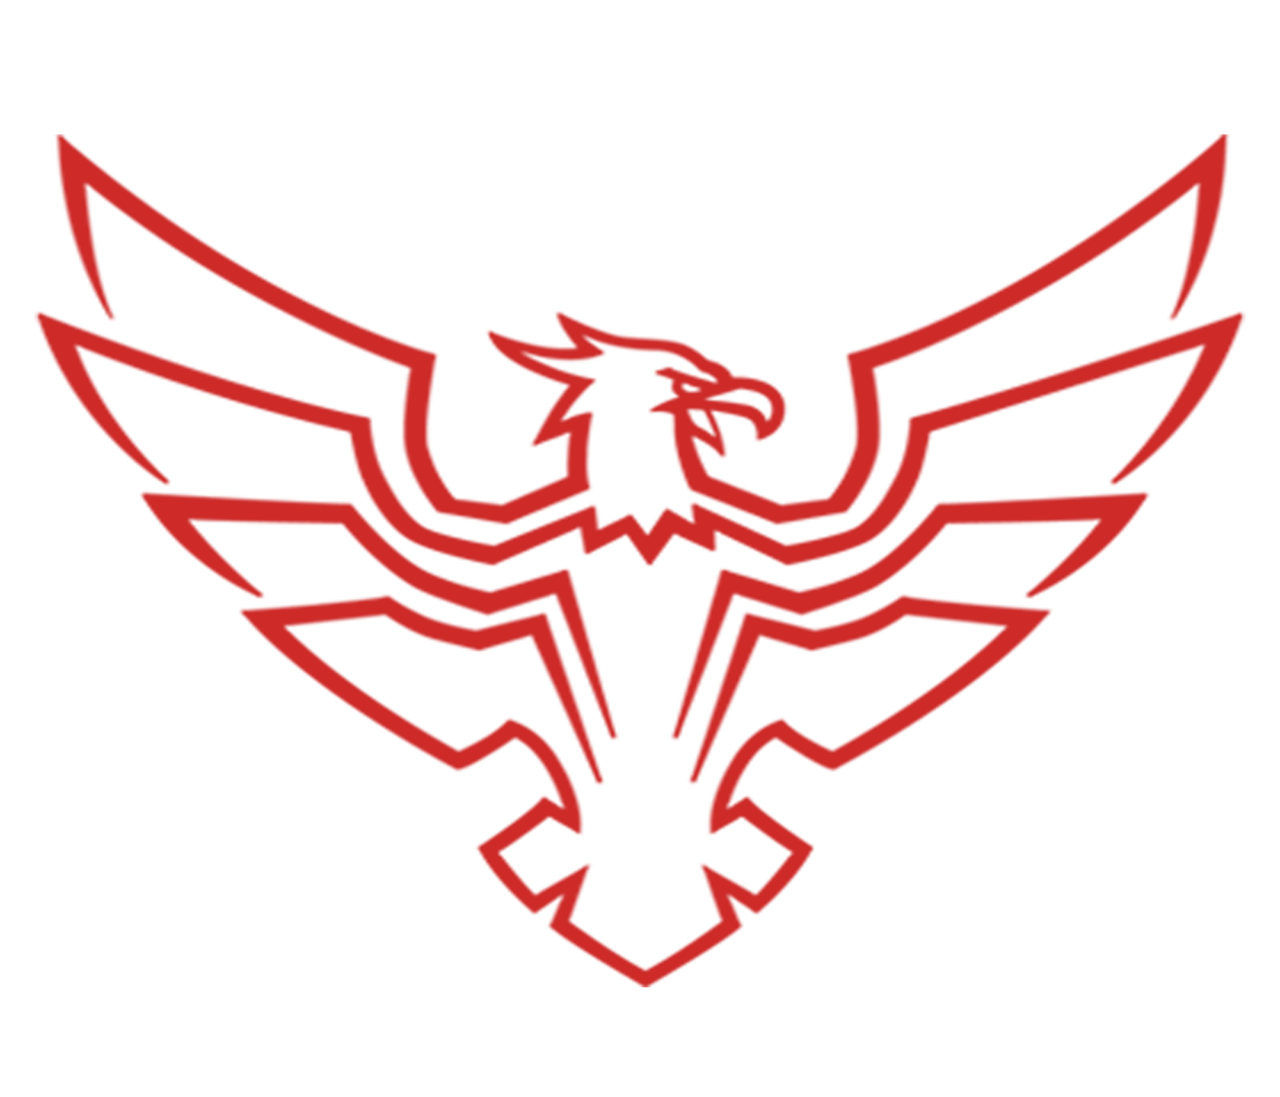 Hawk logo png. Red by irufort on